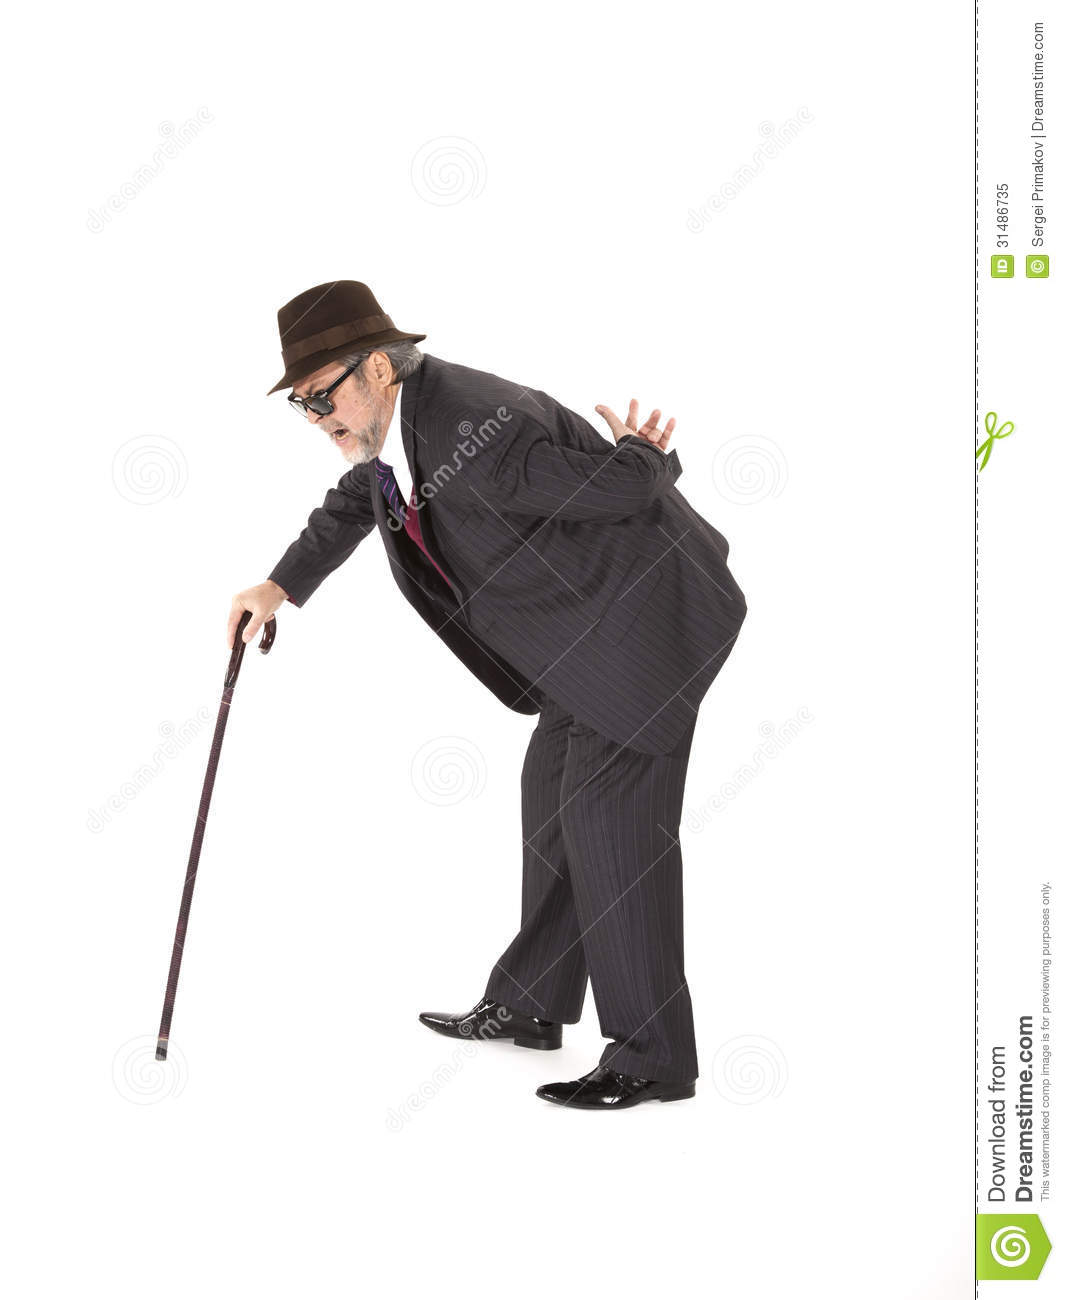 Old Man With A Cane Royalty Free Stock Photo - Image: 31486735